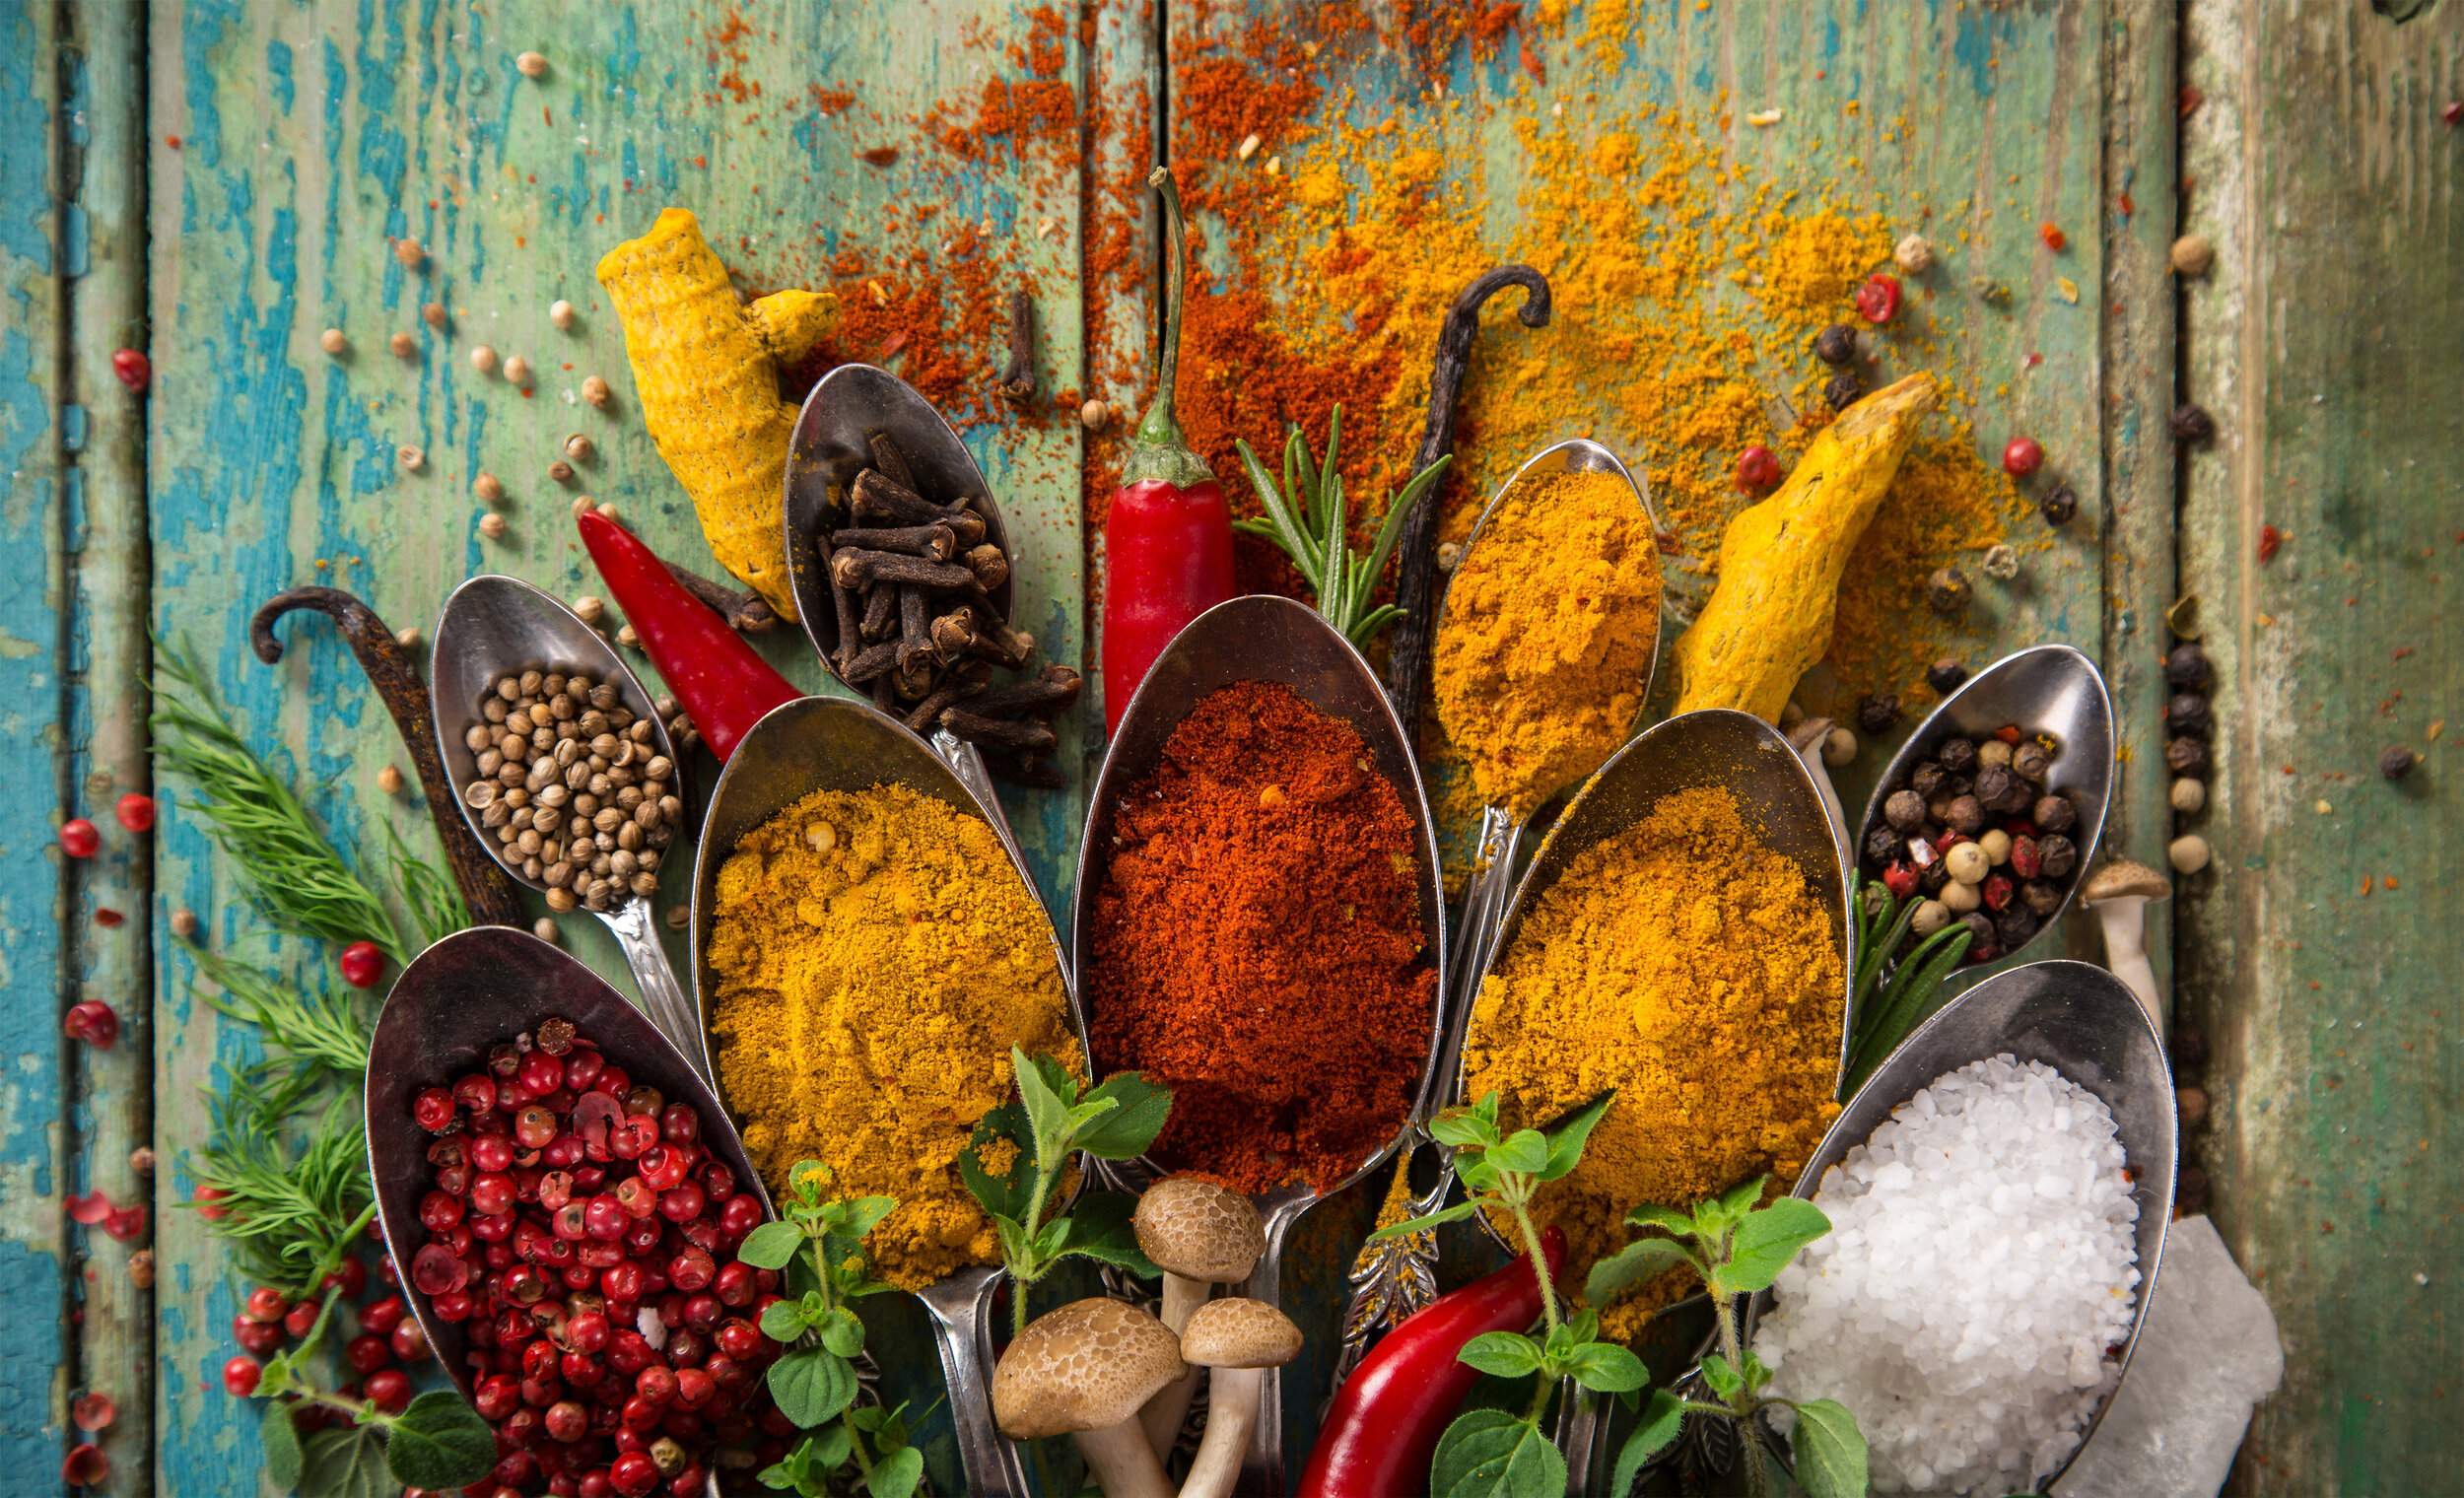 Diwali Set Menu at Station House - Station House Cookery School is joining in by putting on a delicious Diwali inspired Long Table Set Menu.Thursday 10th October from 6pm